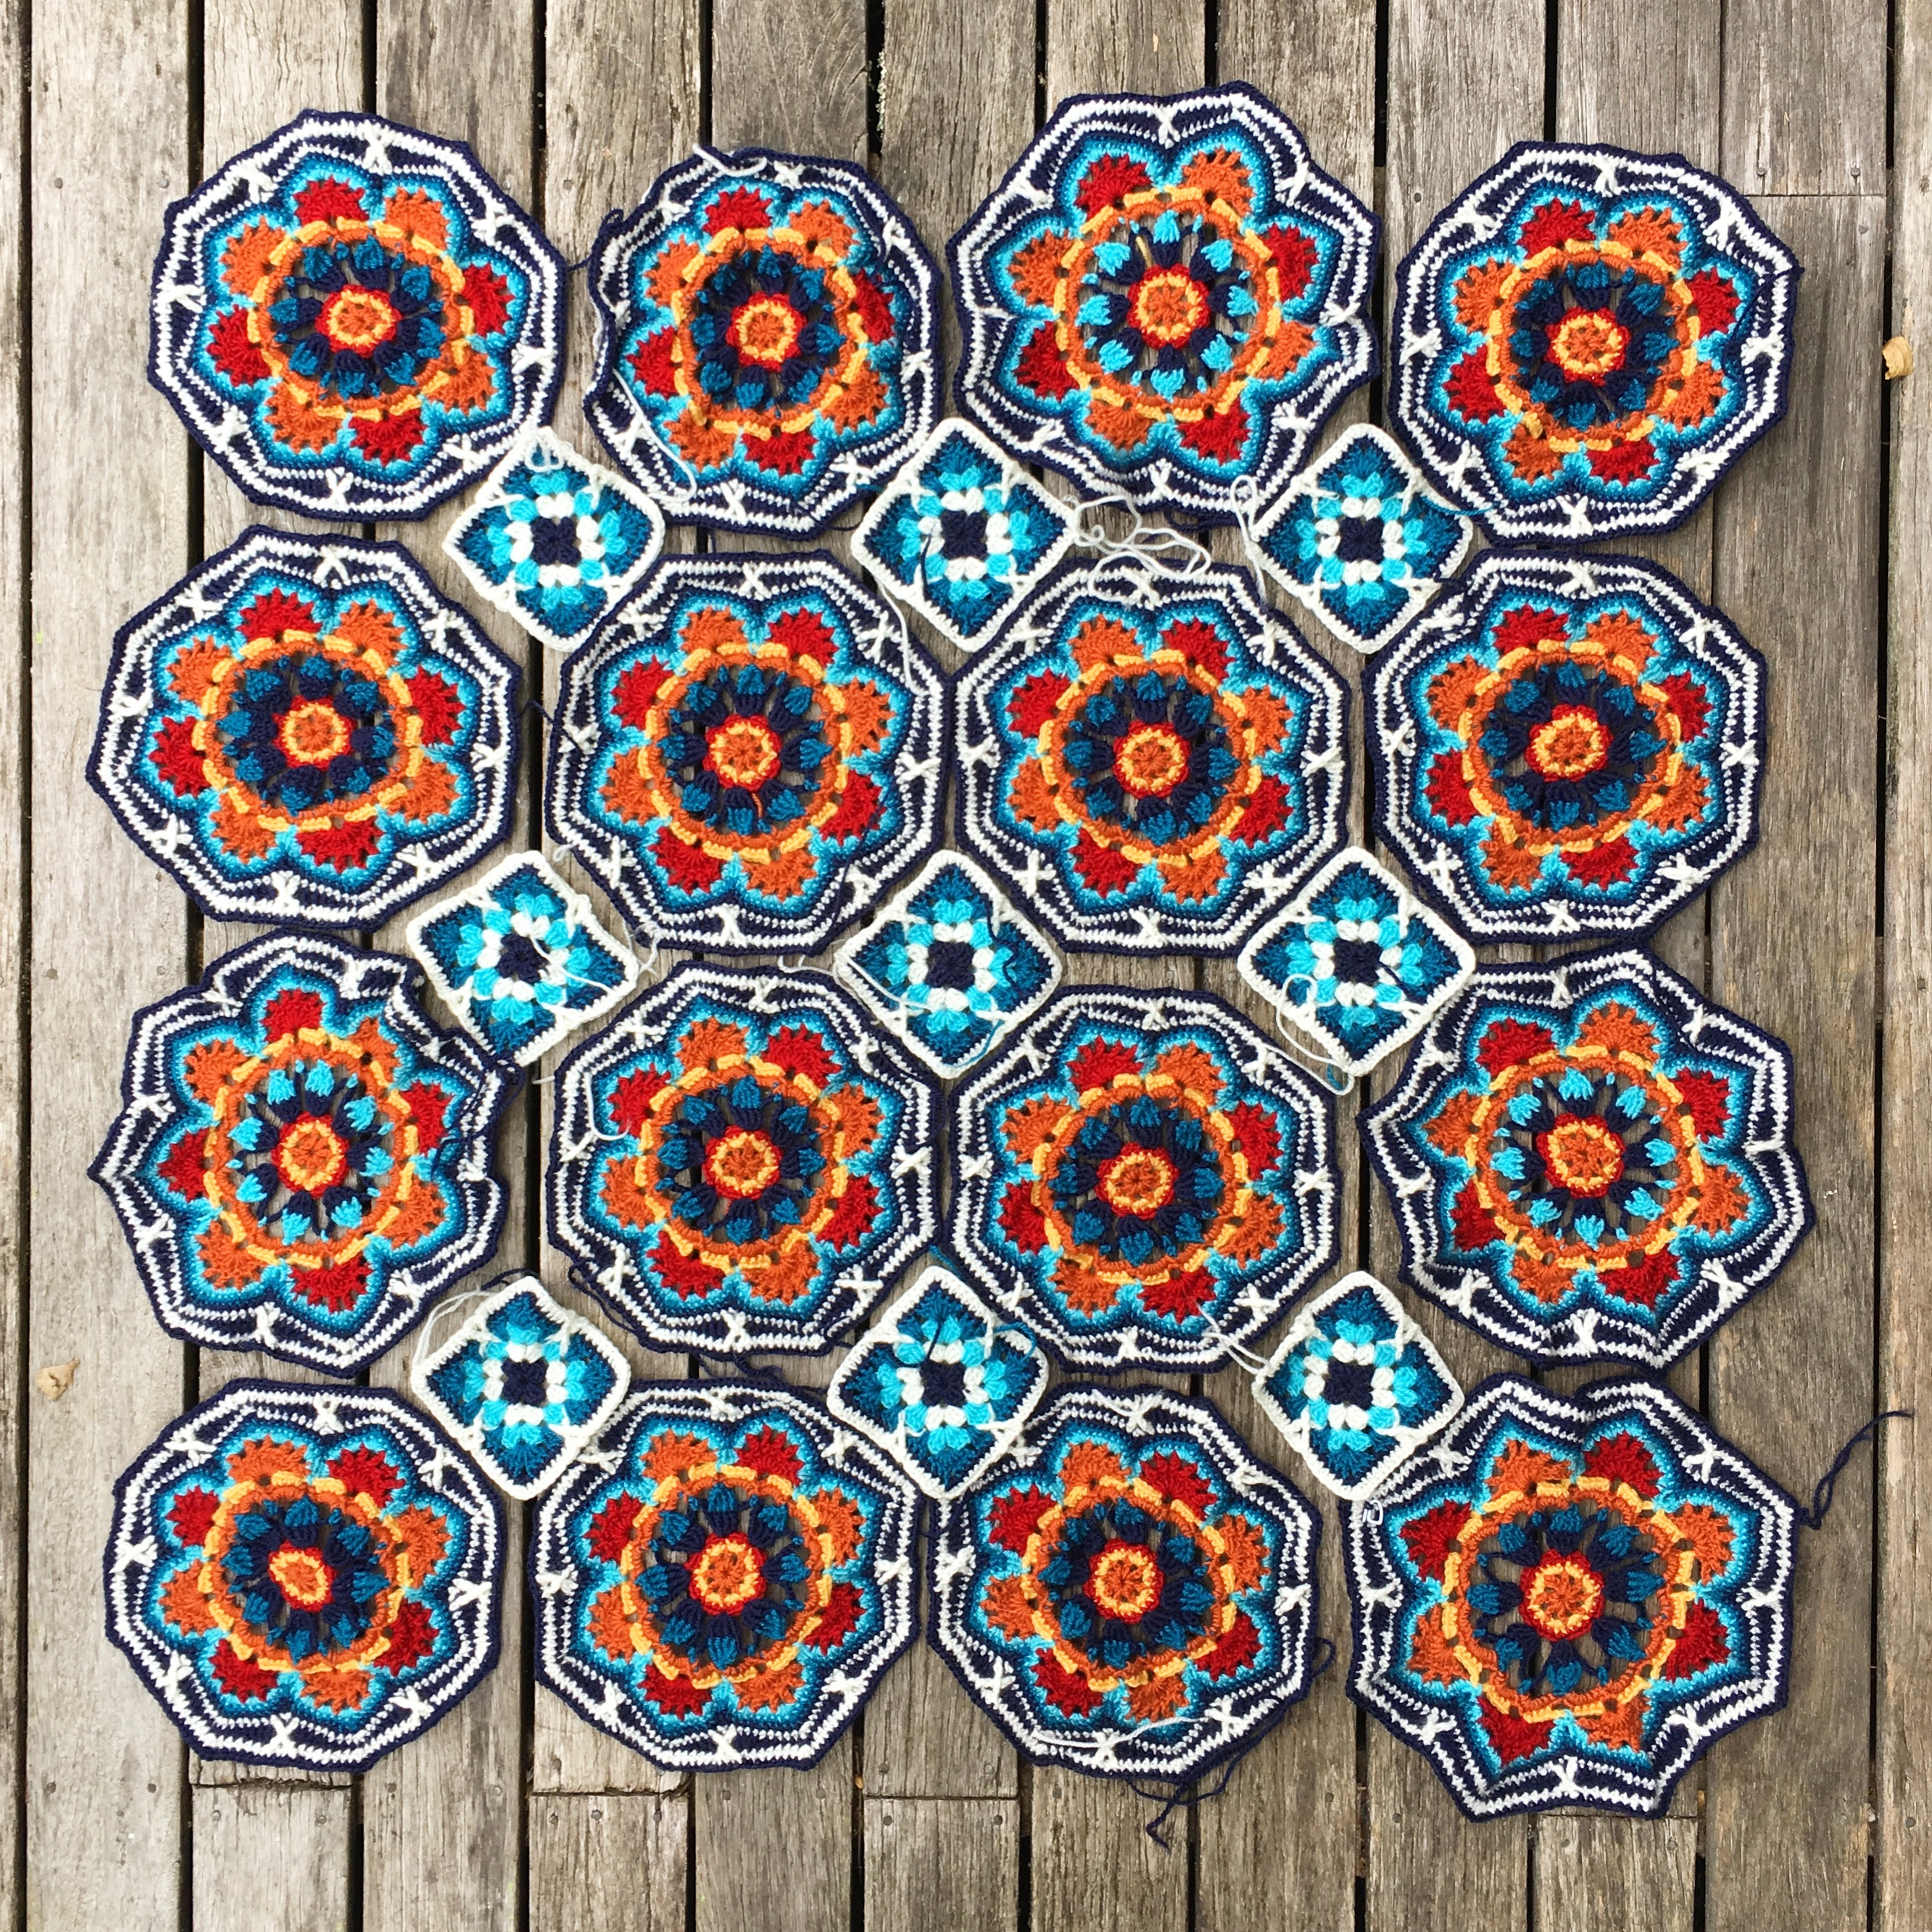 Persian Tiles Blanket – Progress!